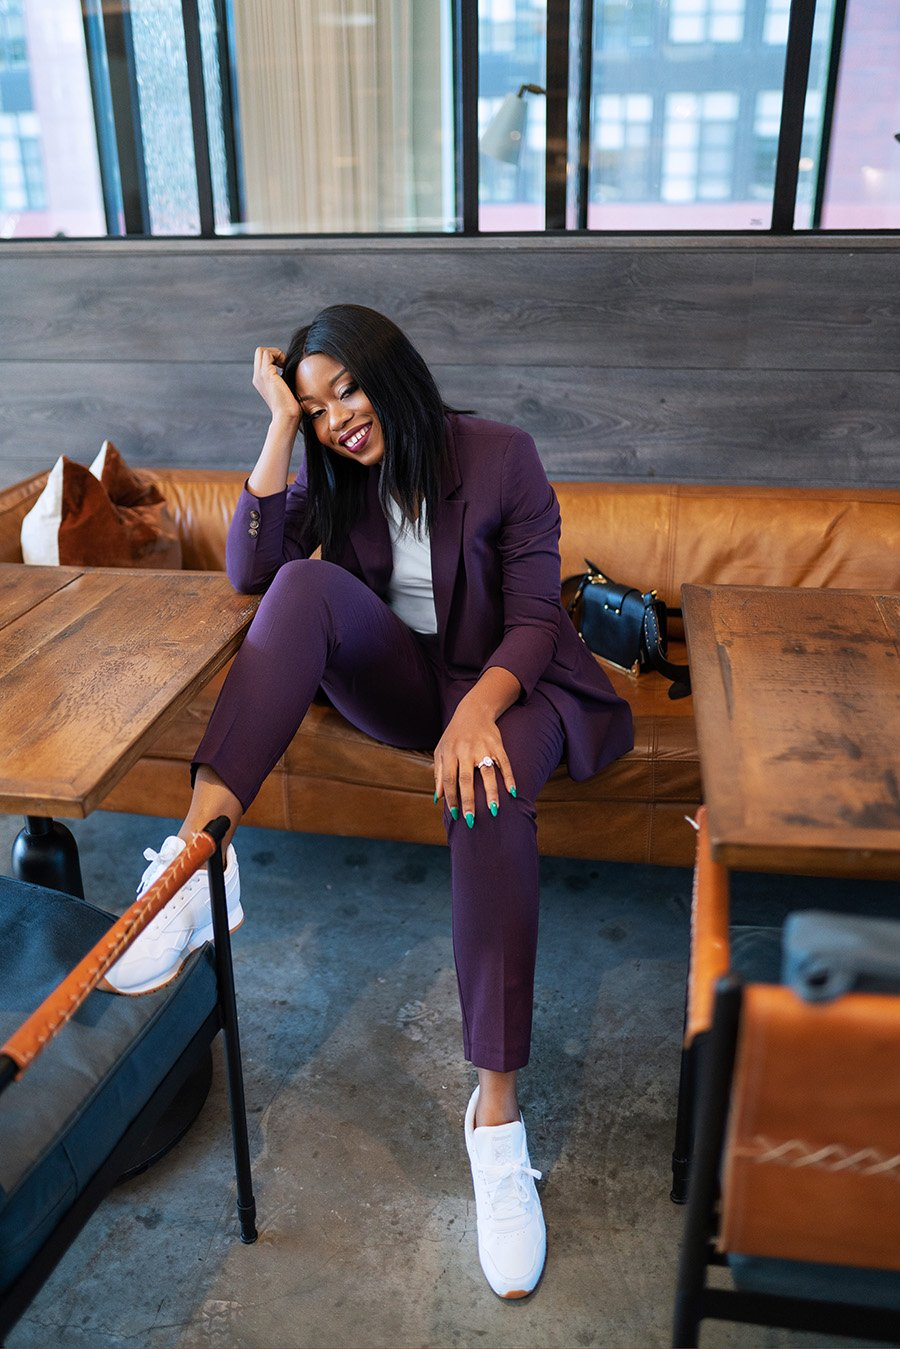 Stella-Adewunmi-of-jadore-fashion-shares-casual-work-outfit-in-suits-and-sneakers